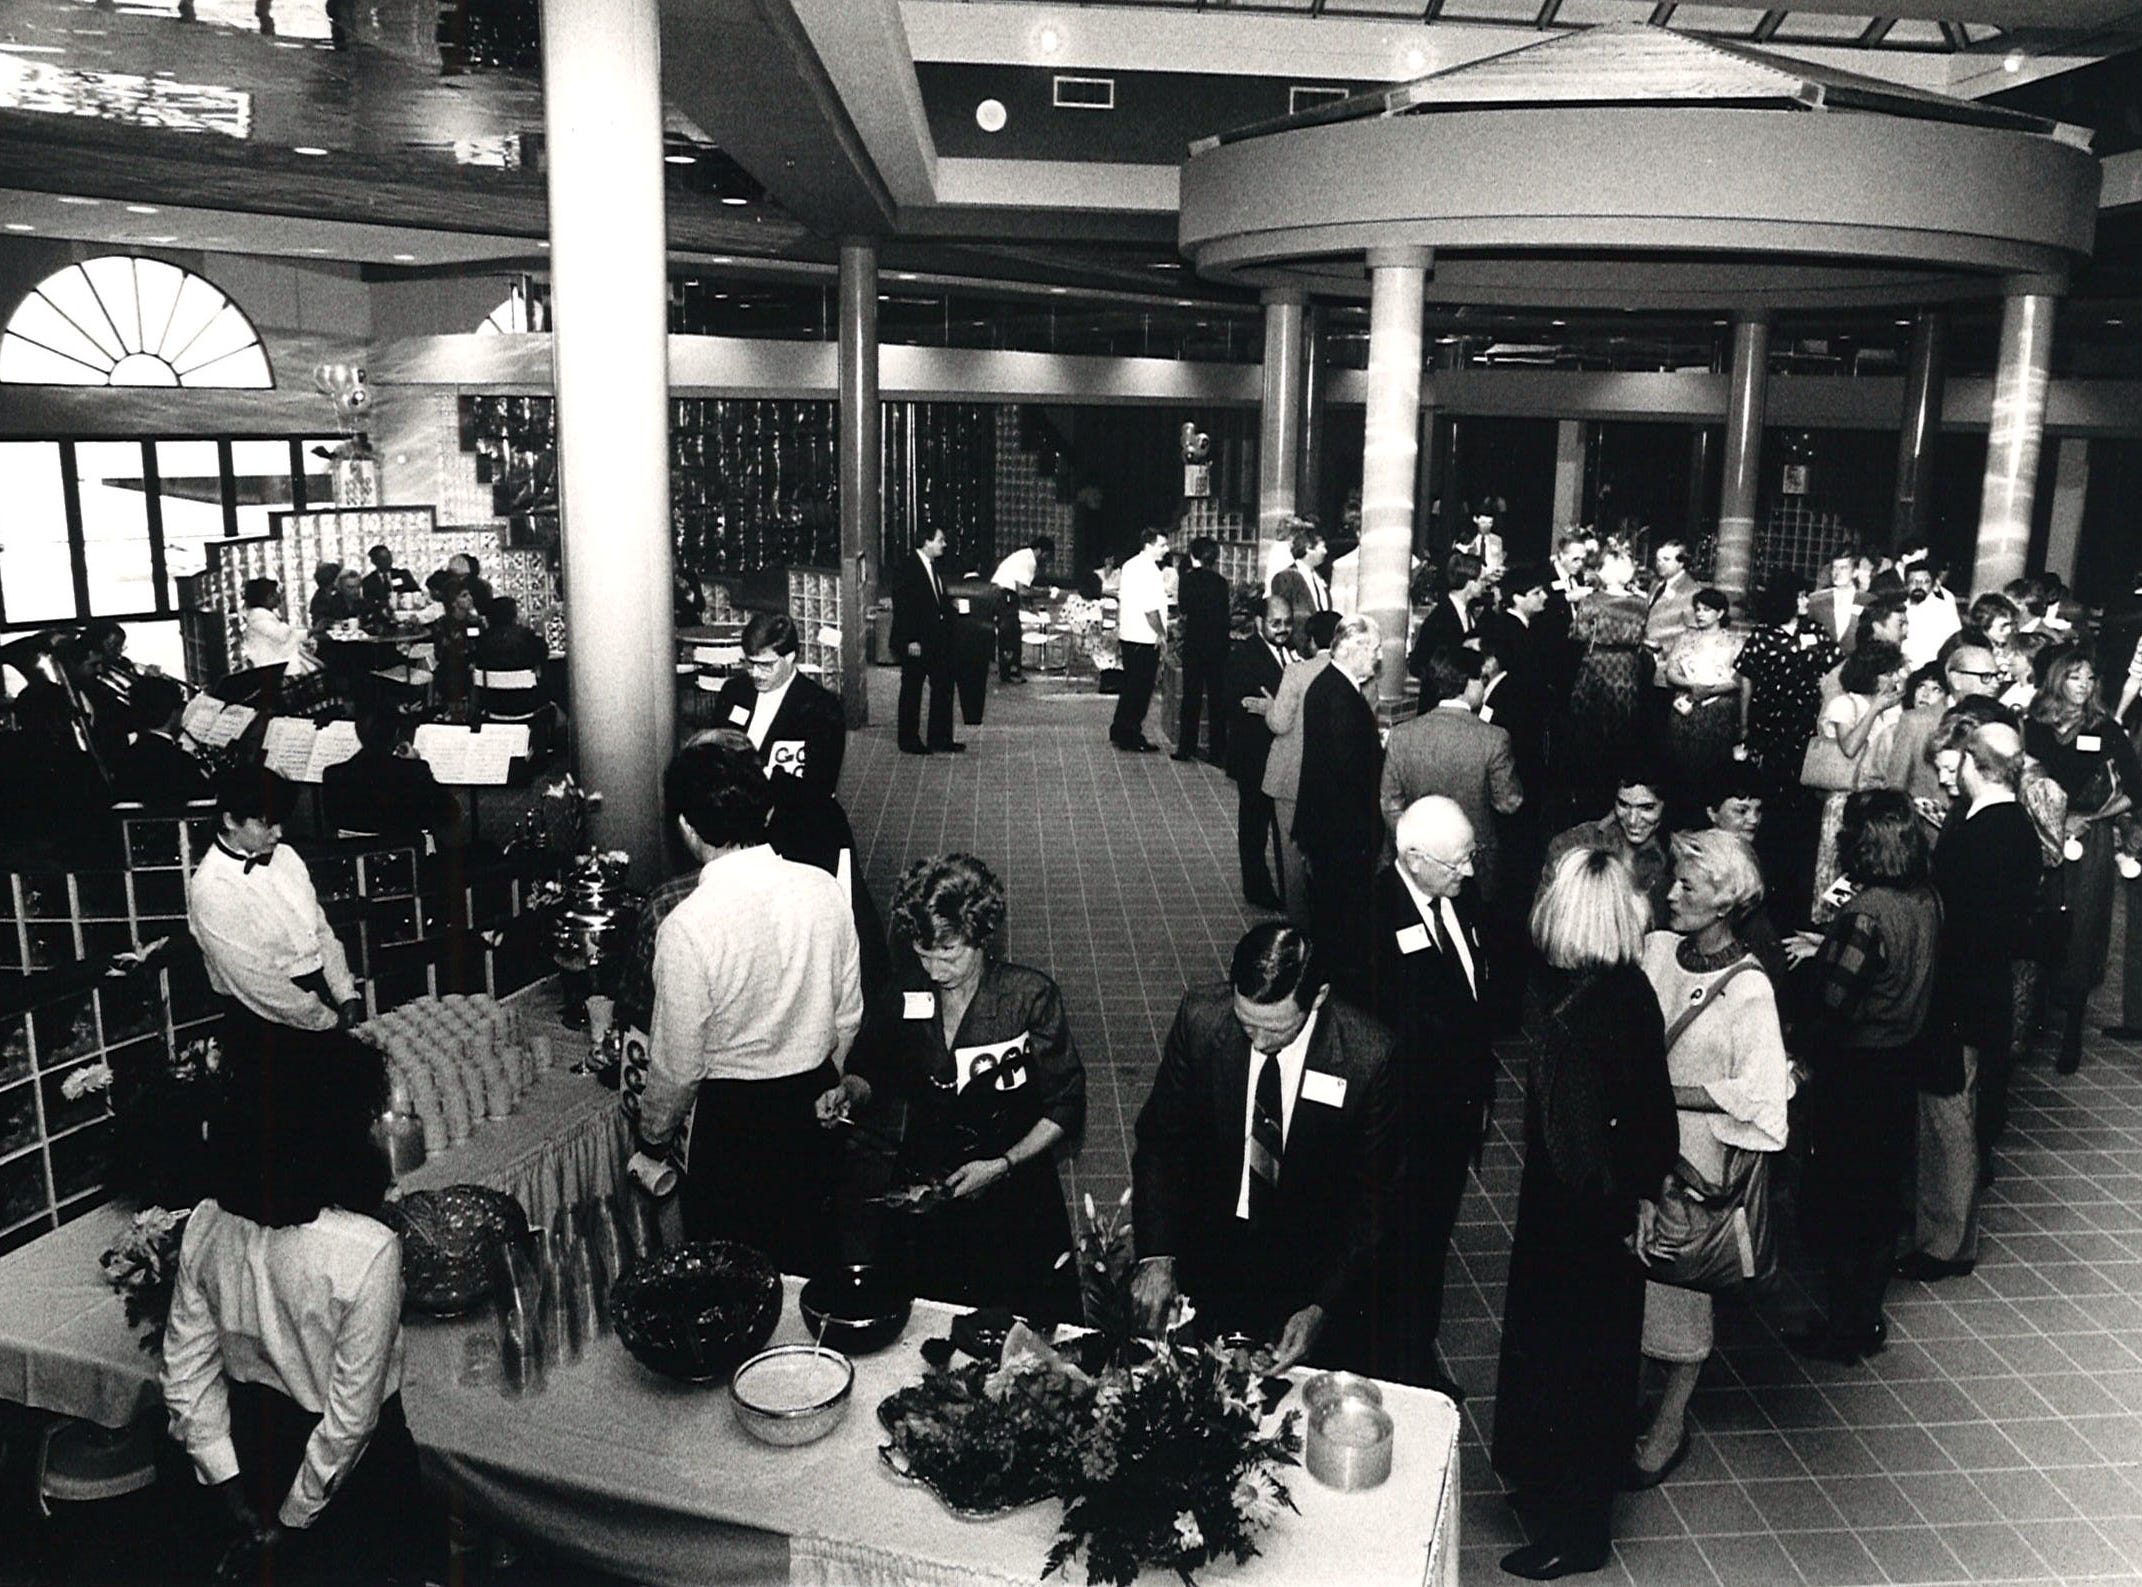 Guests got a sneak preview of the brand new food court in Corpus Christi's Padre Staples Mall on Nov. 3, 1986.